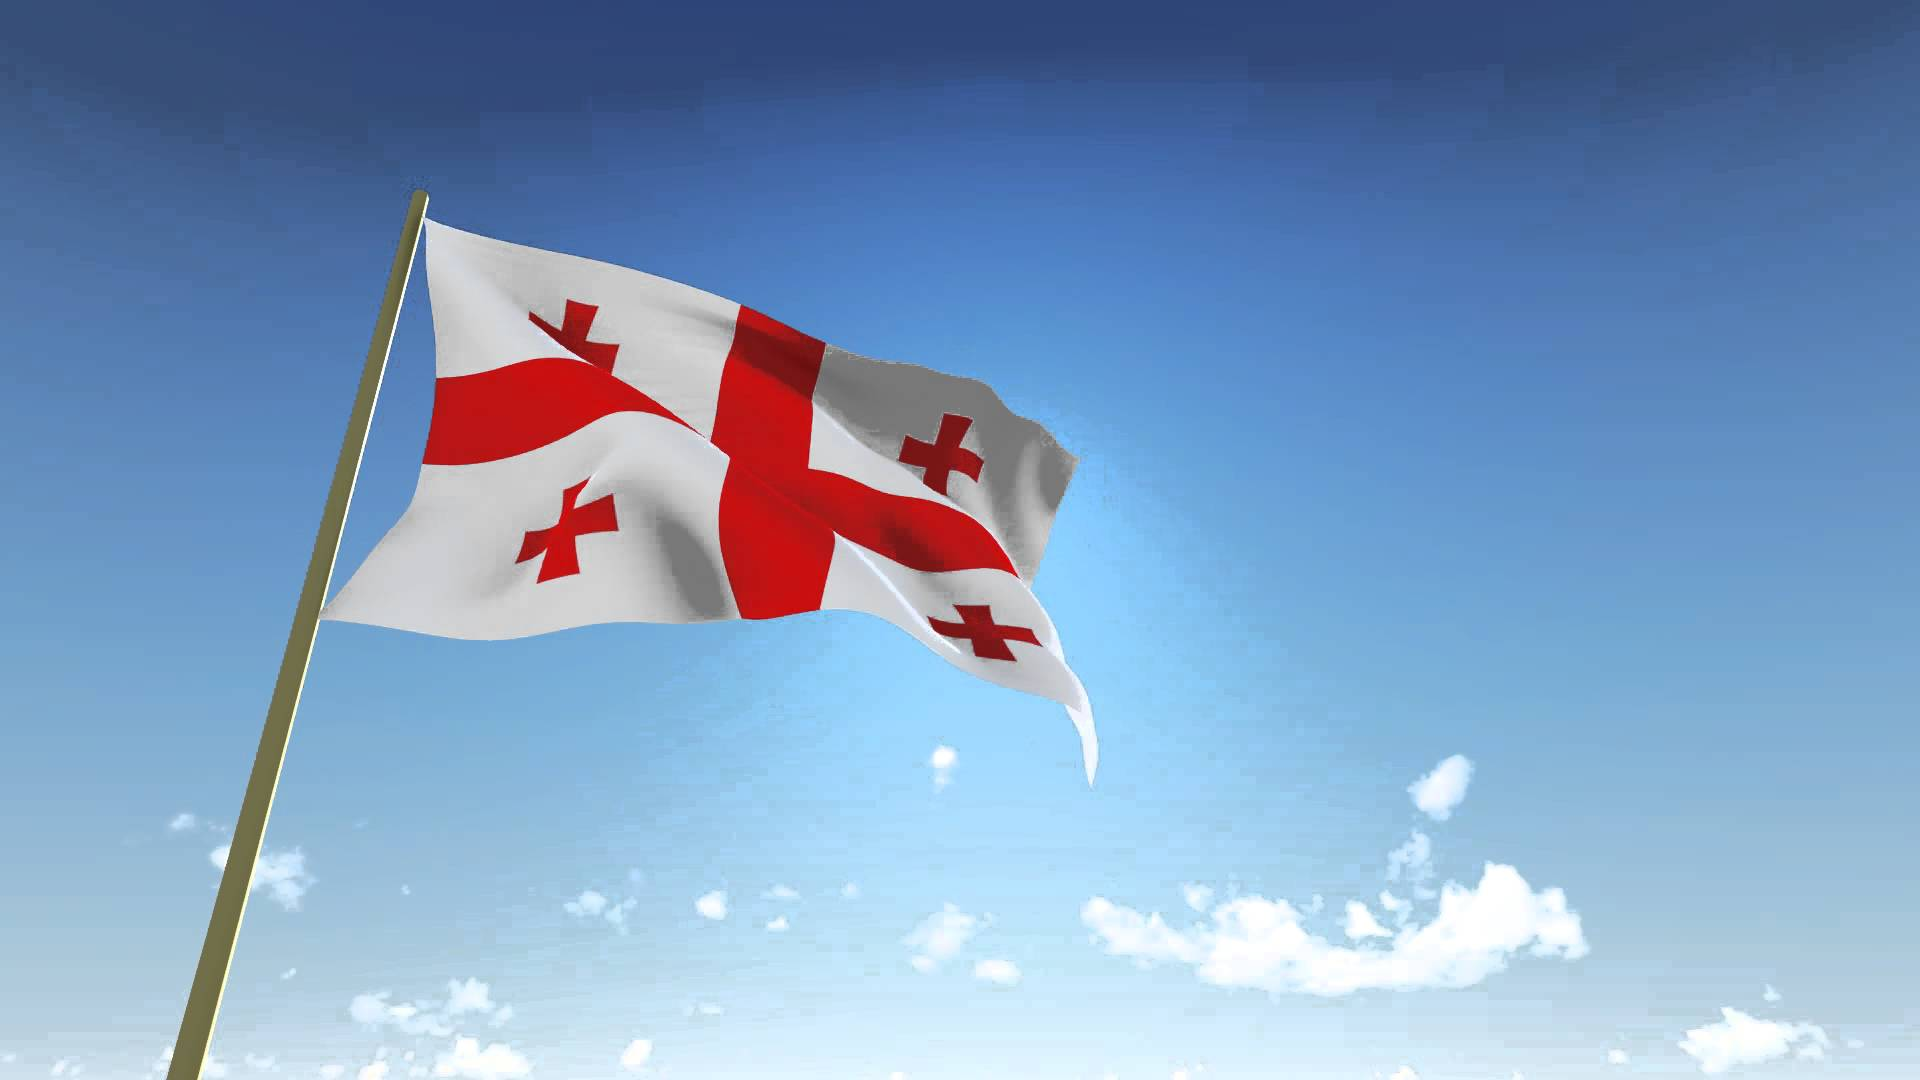 Amazing Flag Of Georgia Pictures & Backgrounds